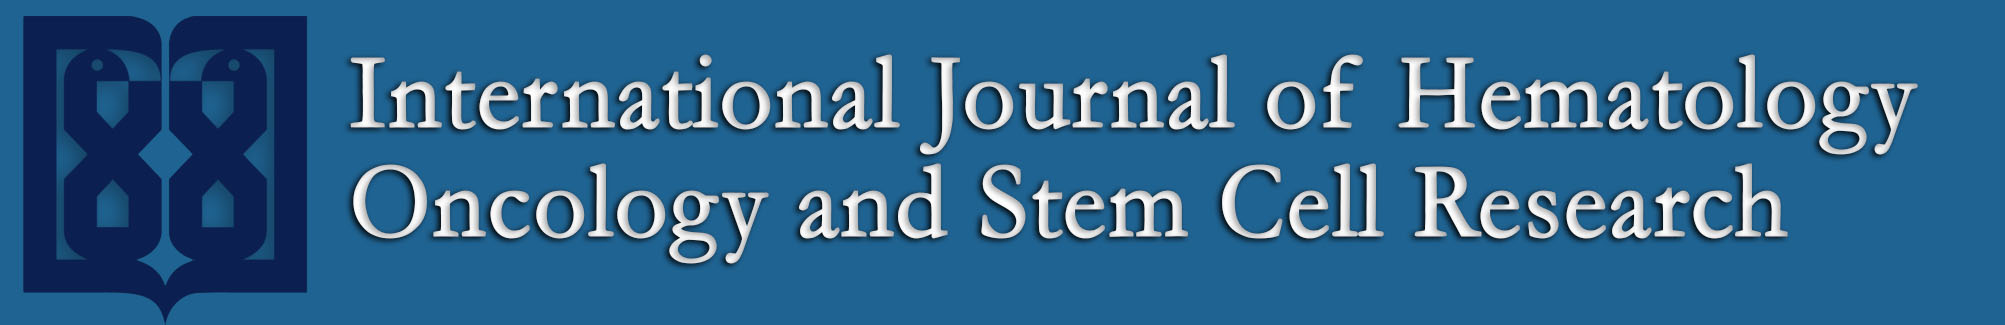 International Journal of Hematology-Oncology and Stem Cell